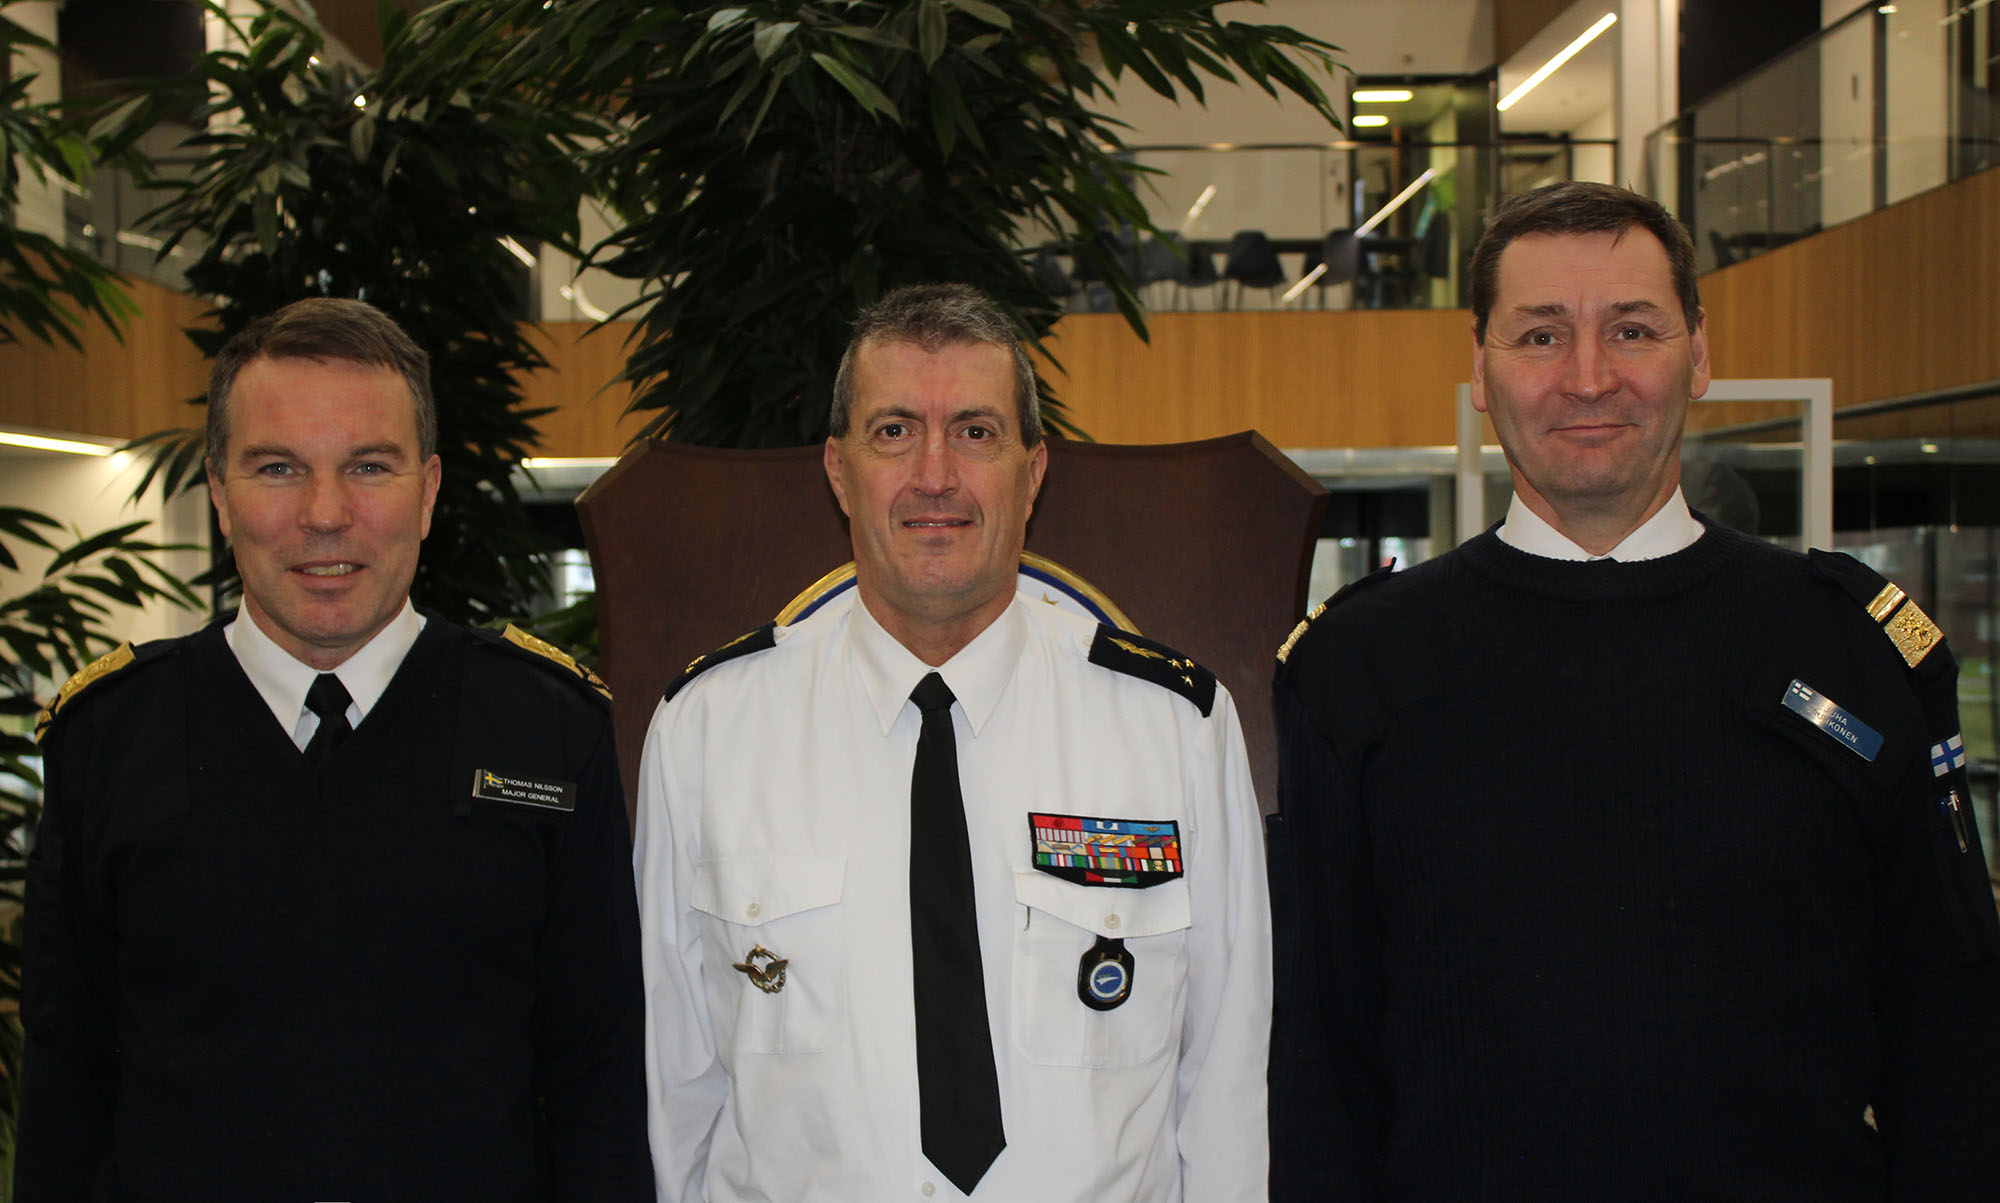 The Finnish and Swedish Military Representatives to the European Union and NATO visit EATC